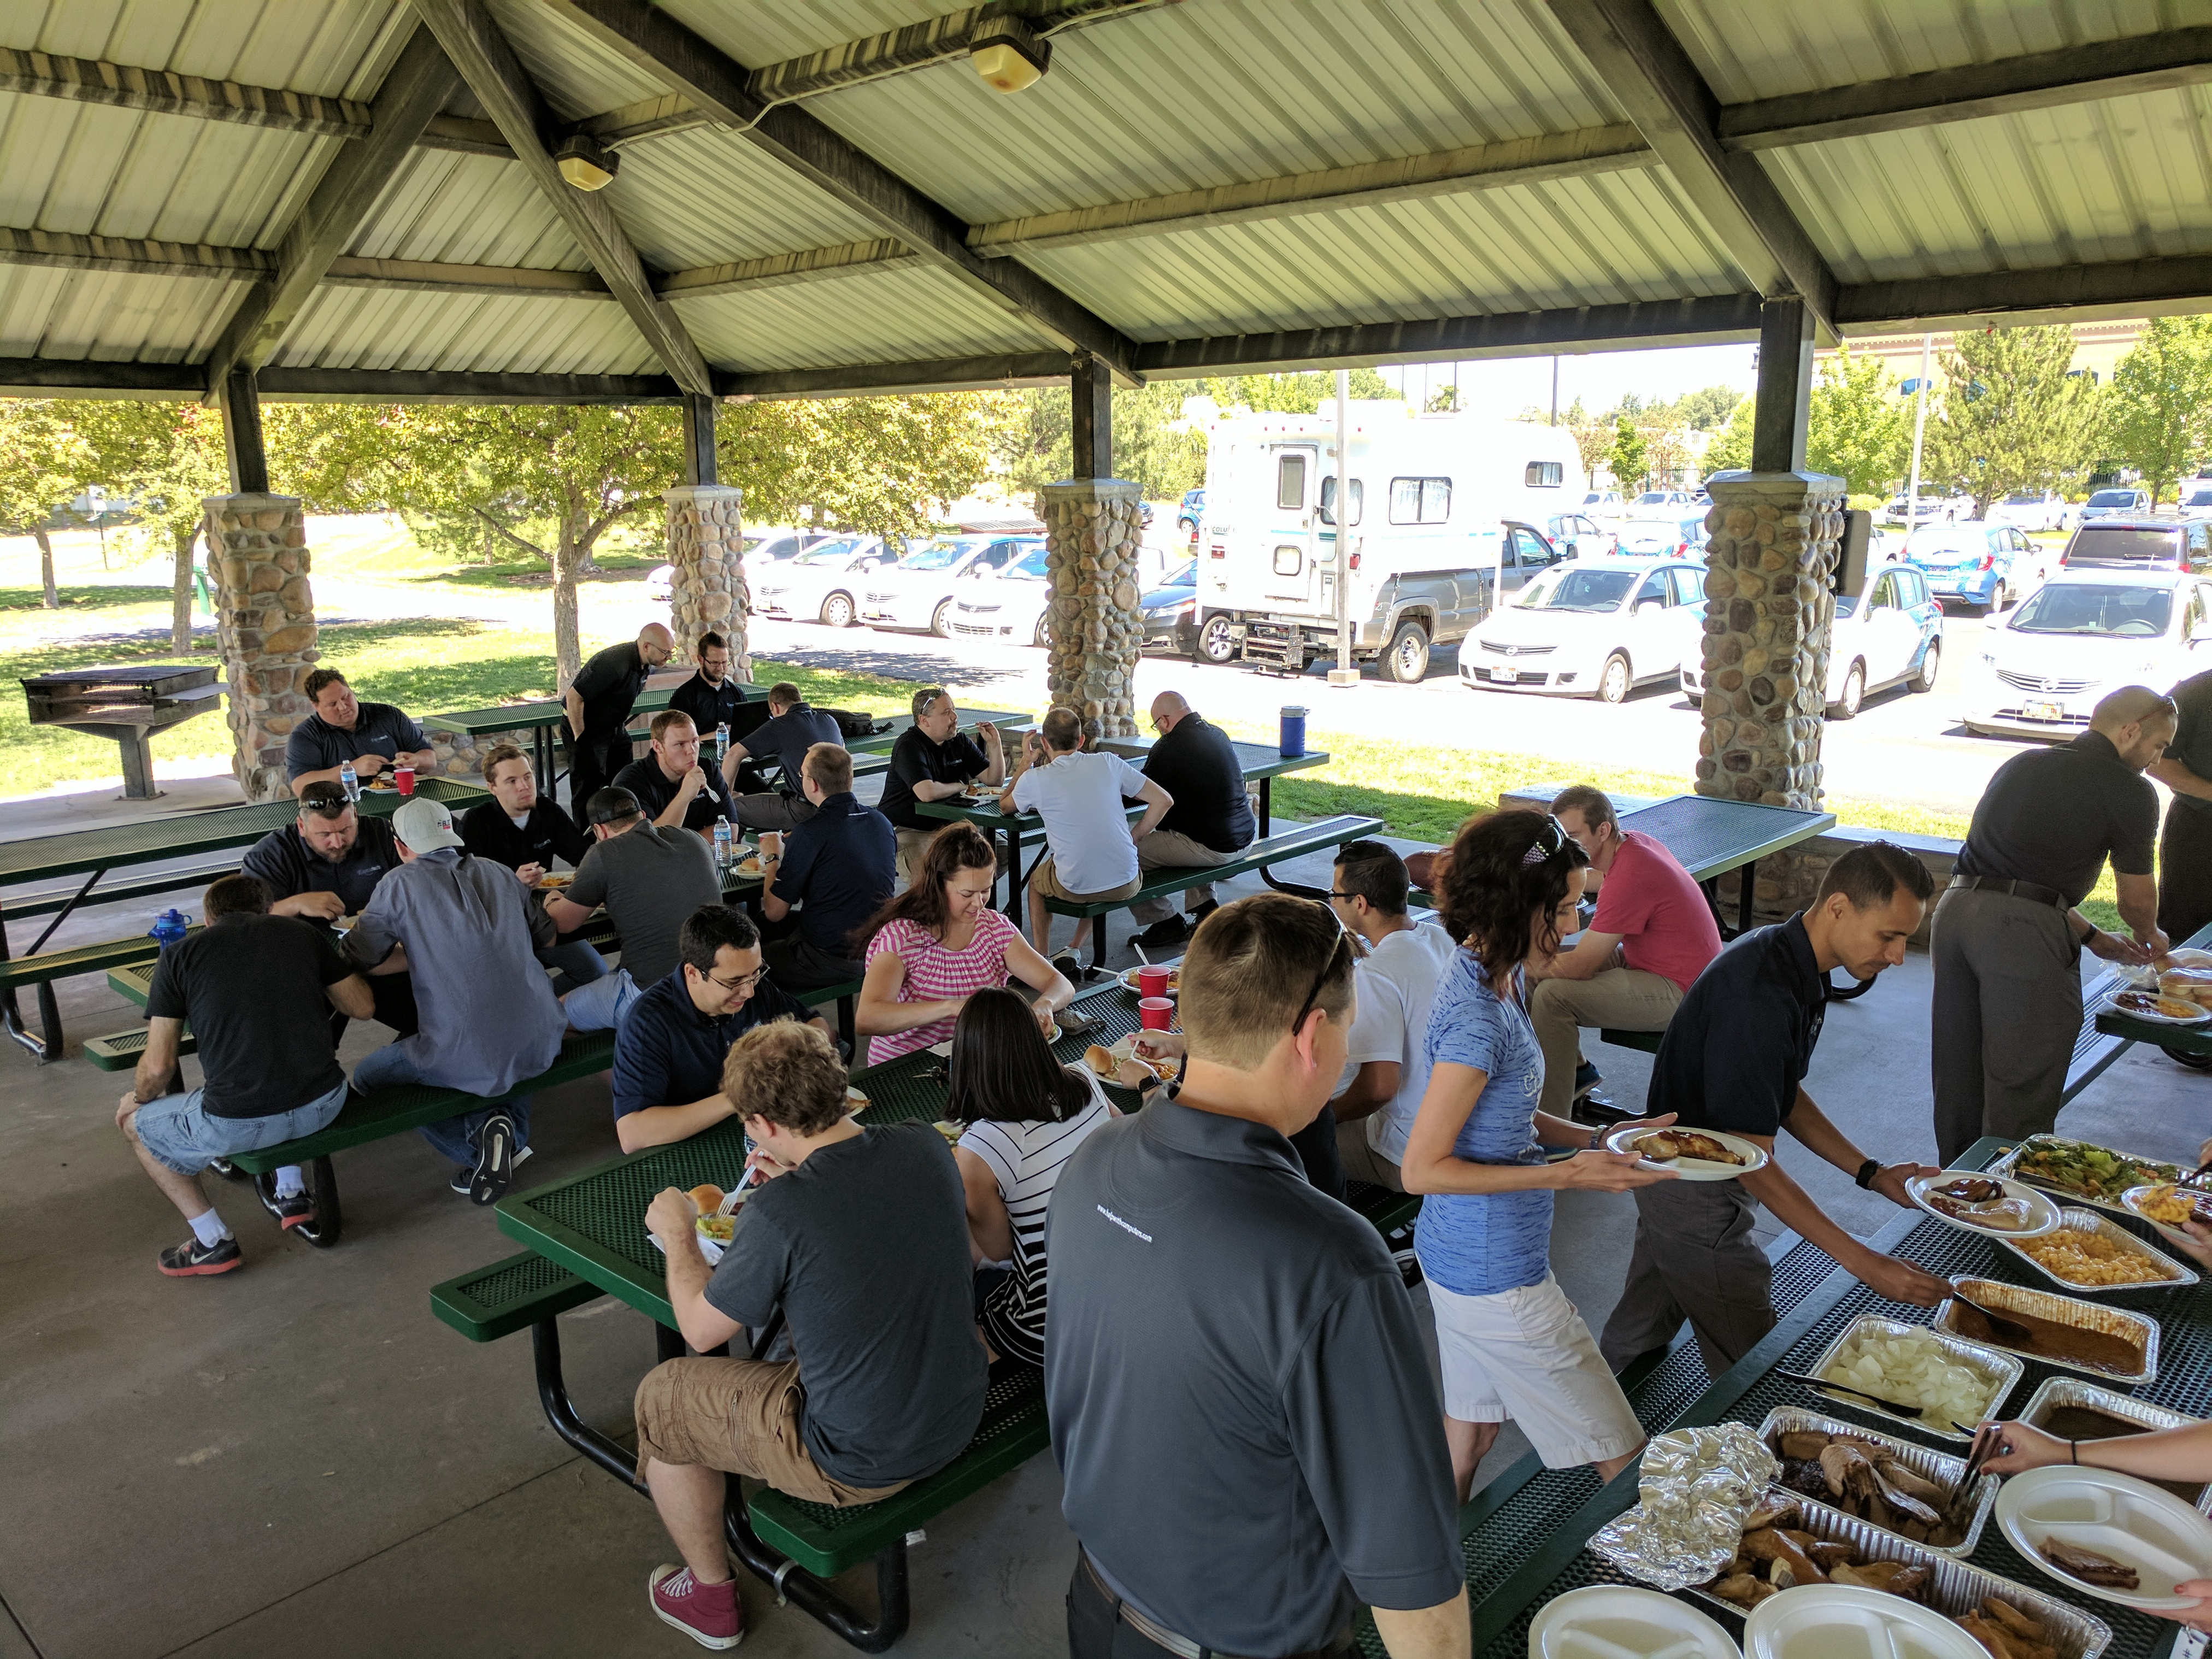 Executech employees enjoy spending time together at a company BBQs.